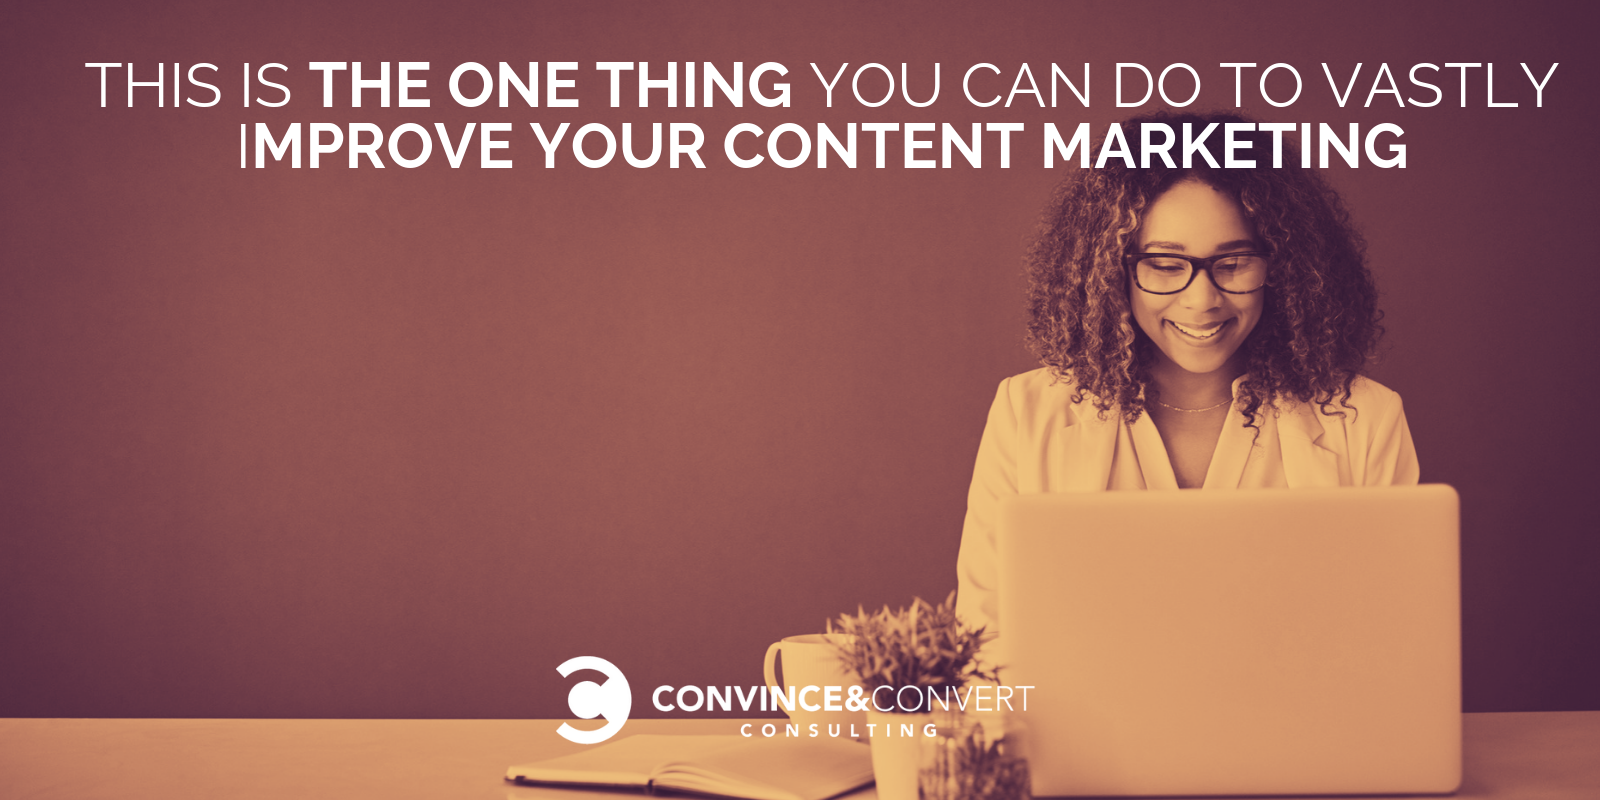 This Is the One Thing You Can Do to Vastly Improve Your Content Marketing